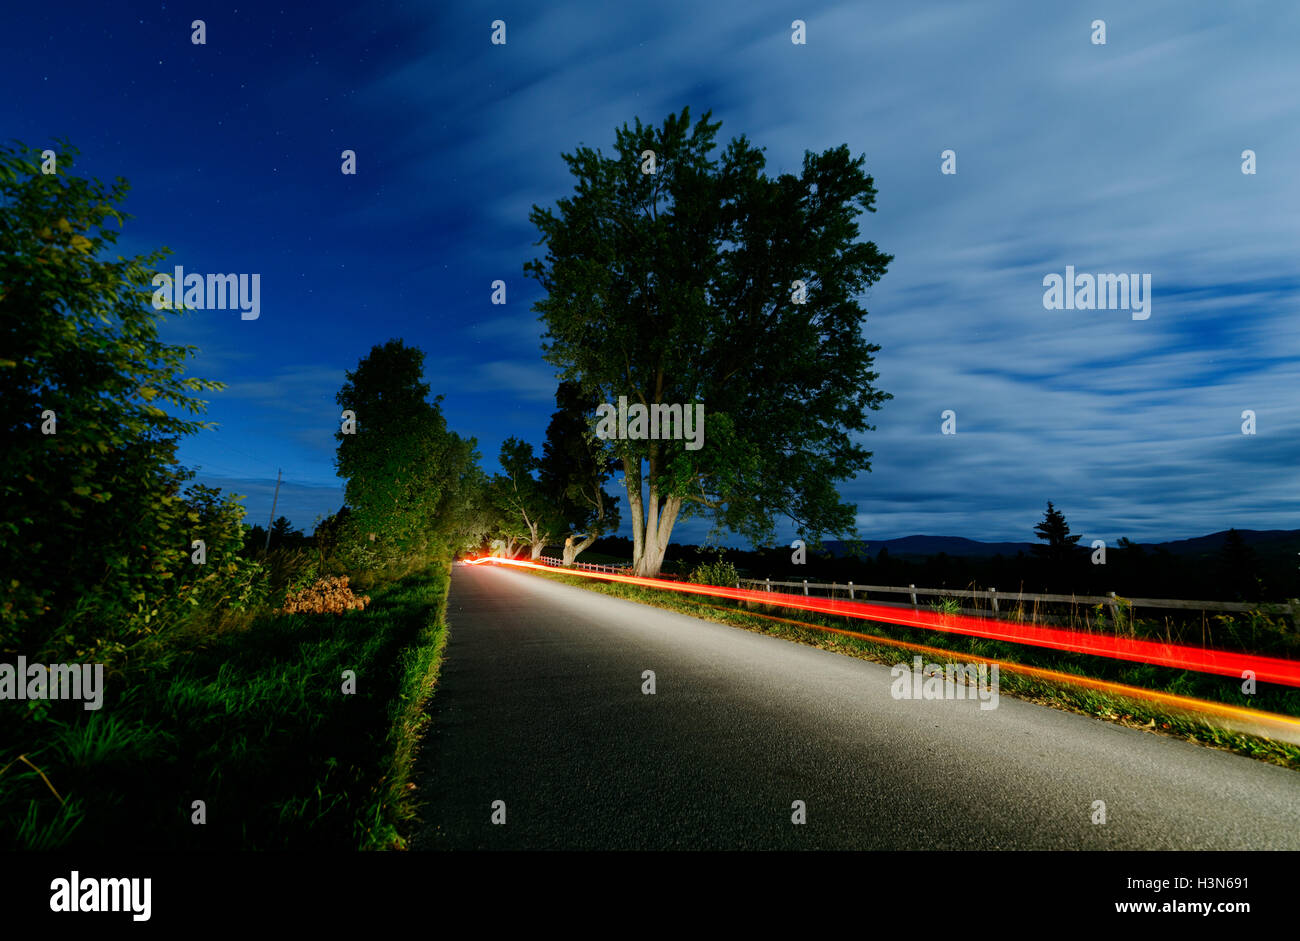 Car headlights and tail lights moving down a country lane at night - Stock Image